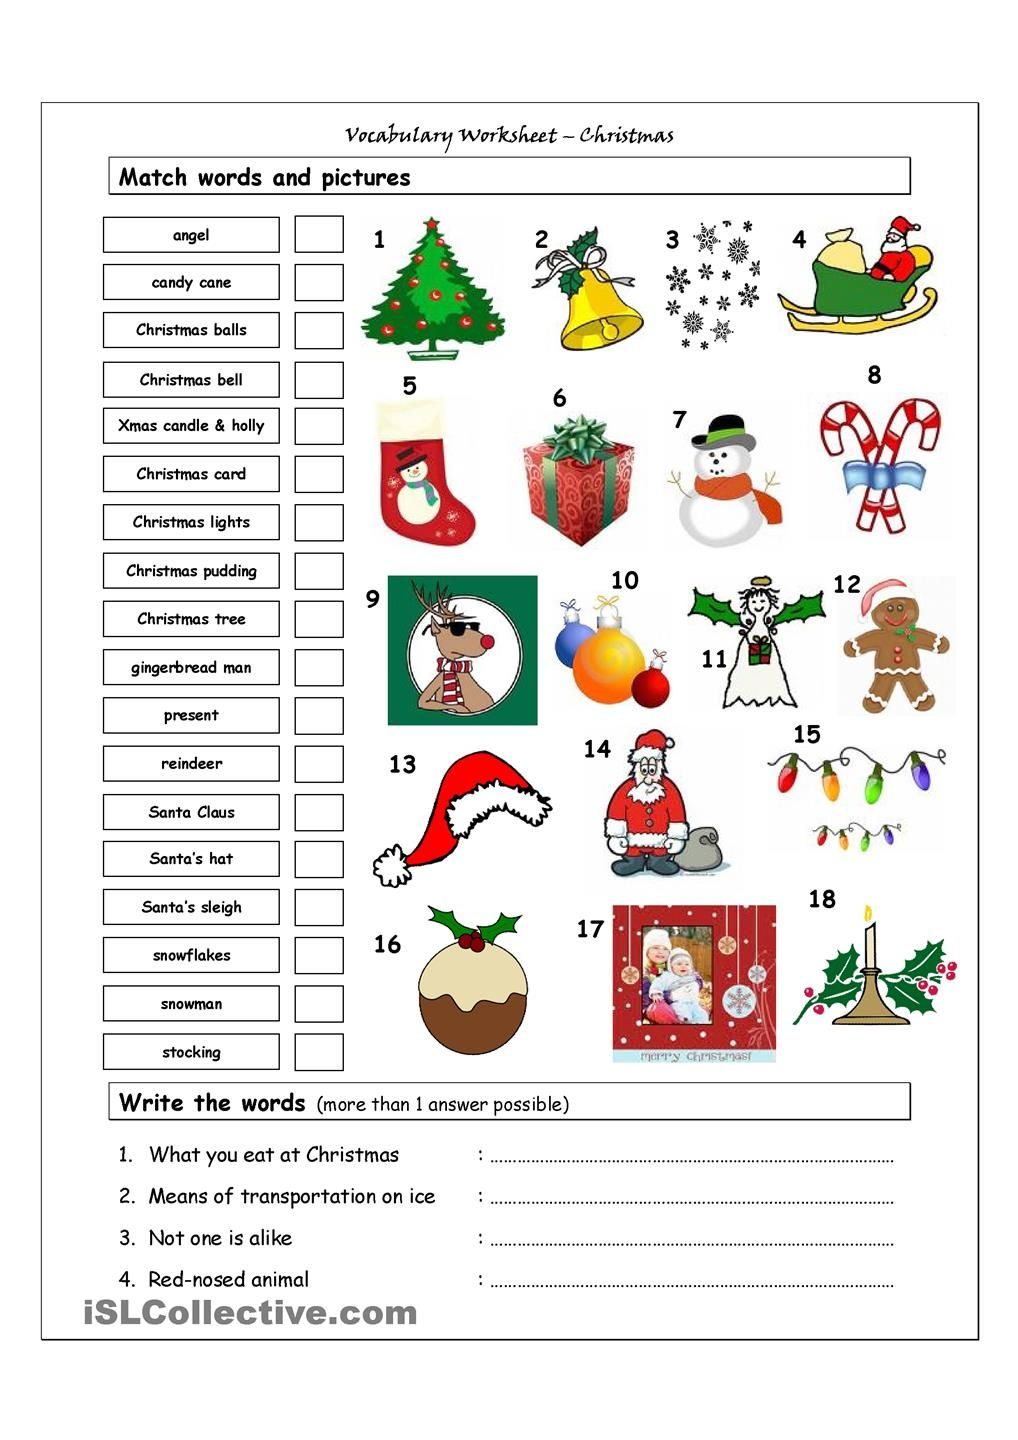 Worksheets Christmas Worksheets 1000 images about en christmas easter and other festivals on pinterest santa pictures valentine words crossword